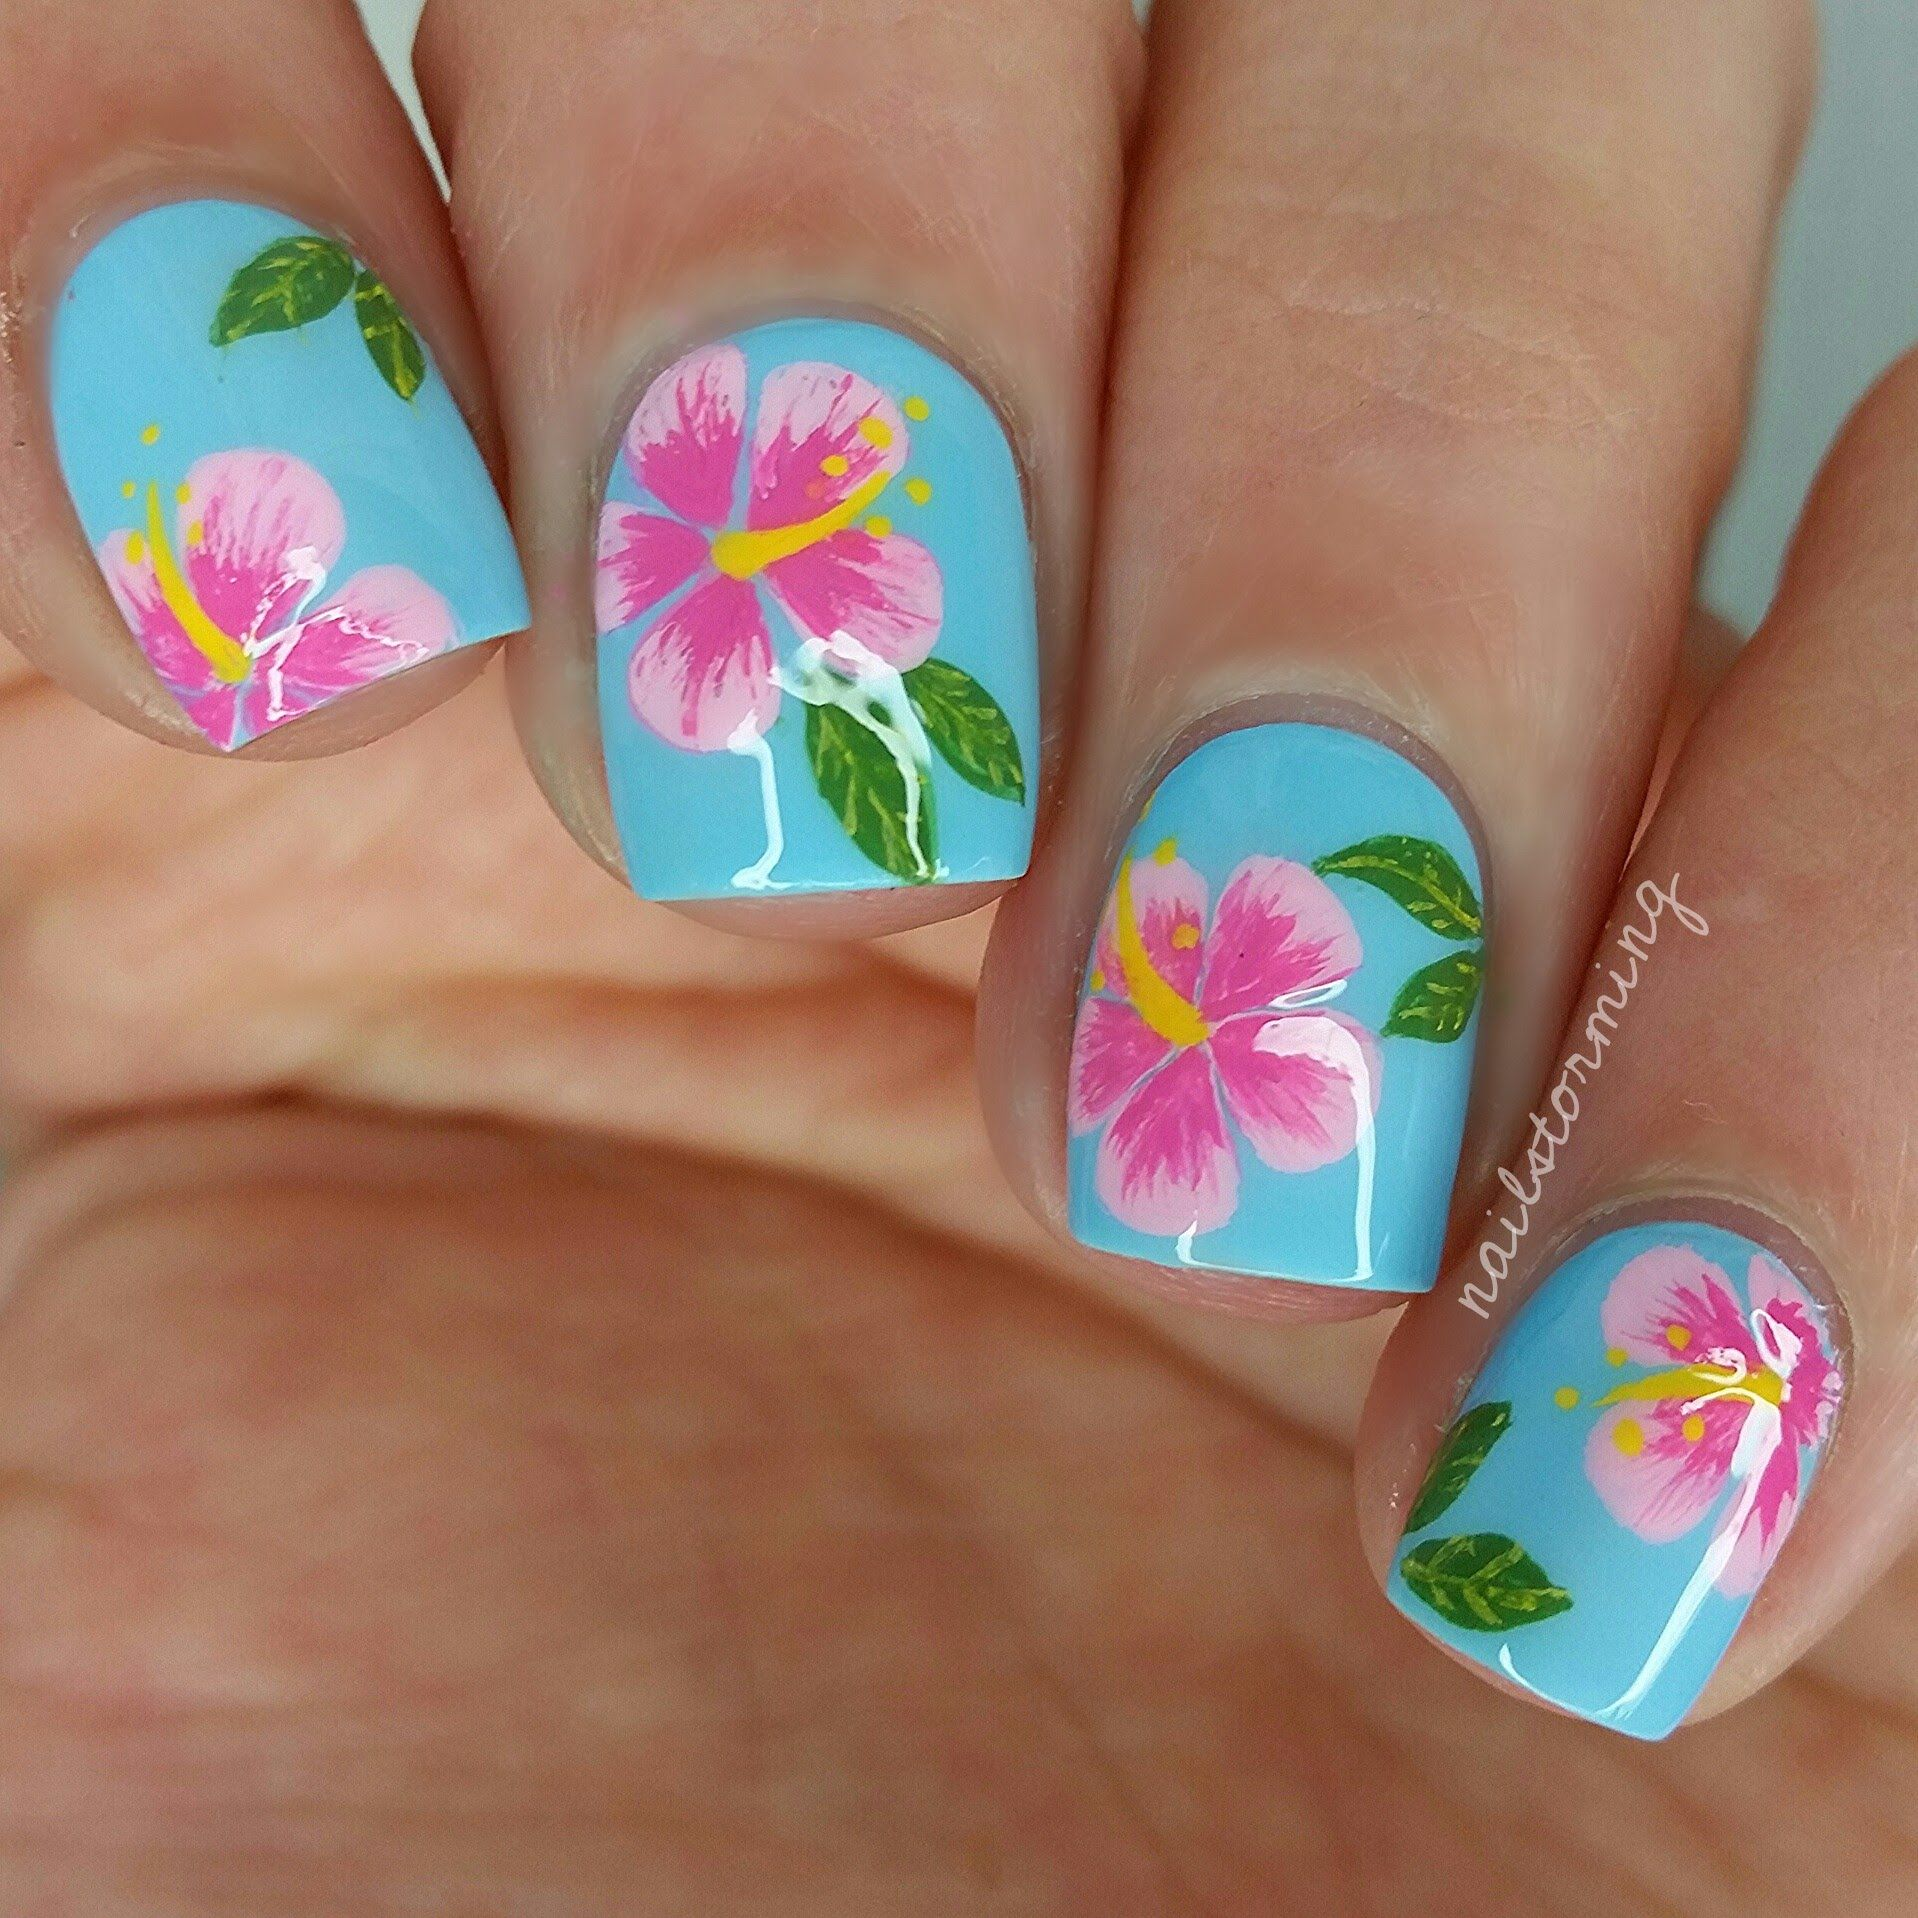 Dream Of Paradise With This Summer Inspired Nail Art With Free Hand Hibiscus Flower Details Diy With This How To And Floral Nails Flower Nails Flower Nail Art